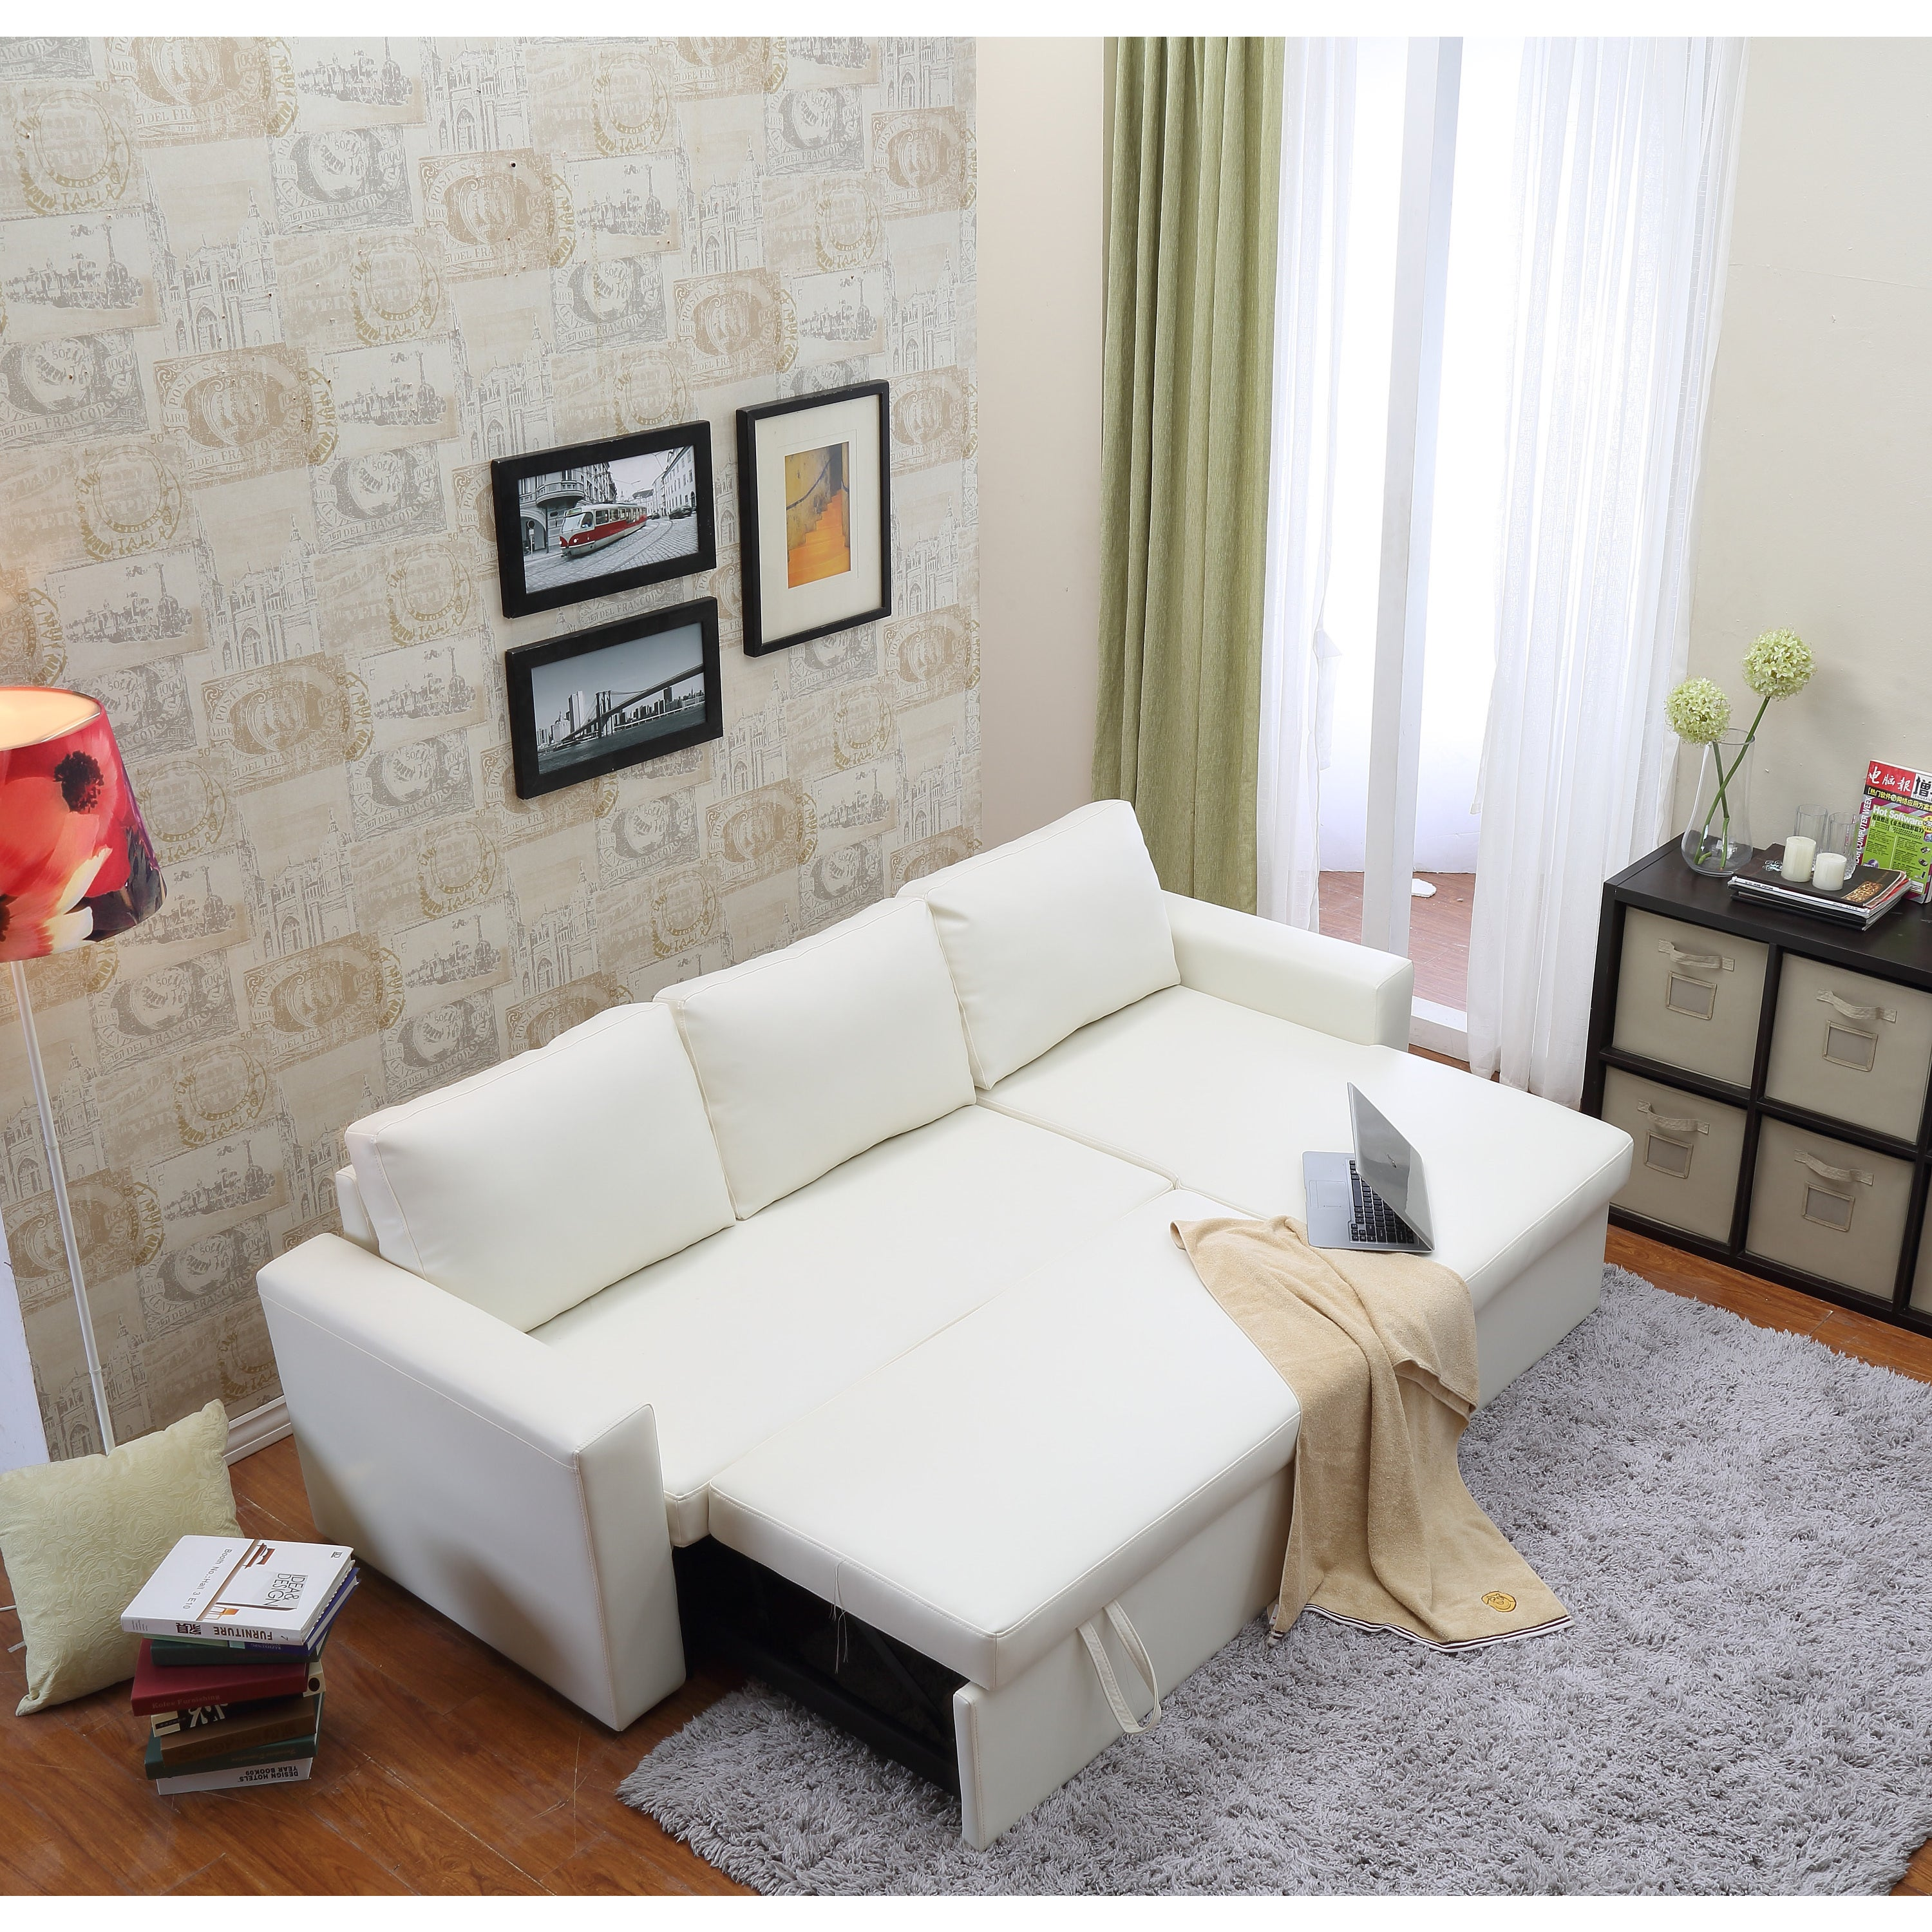 the Hom Geor own 2 piece White Bi cast Leather Sectional Sofa